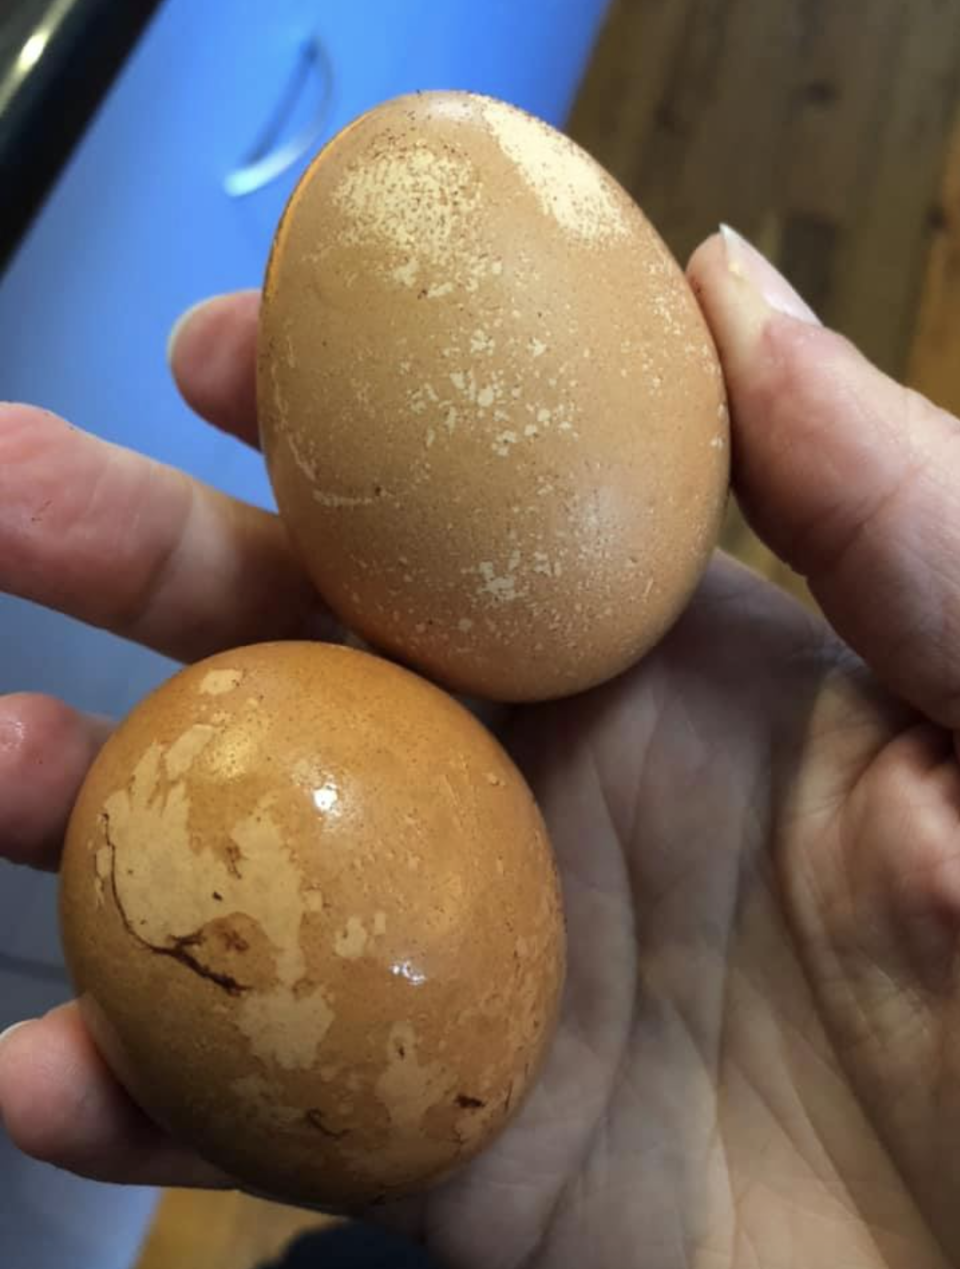 Coles eggs shown with dark discolouration that was later rinsed off with water.